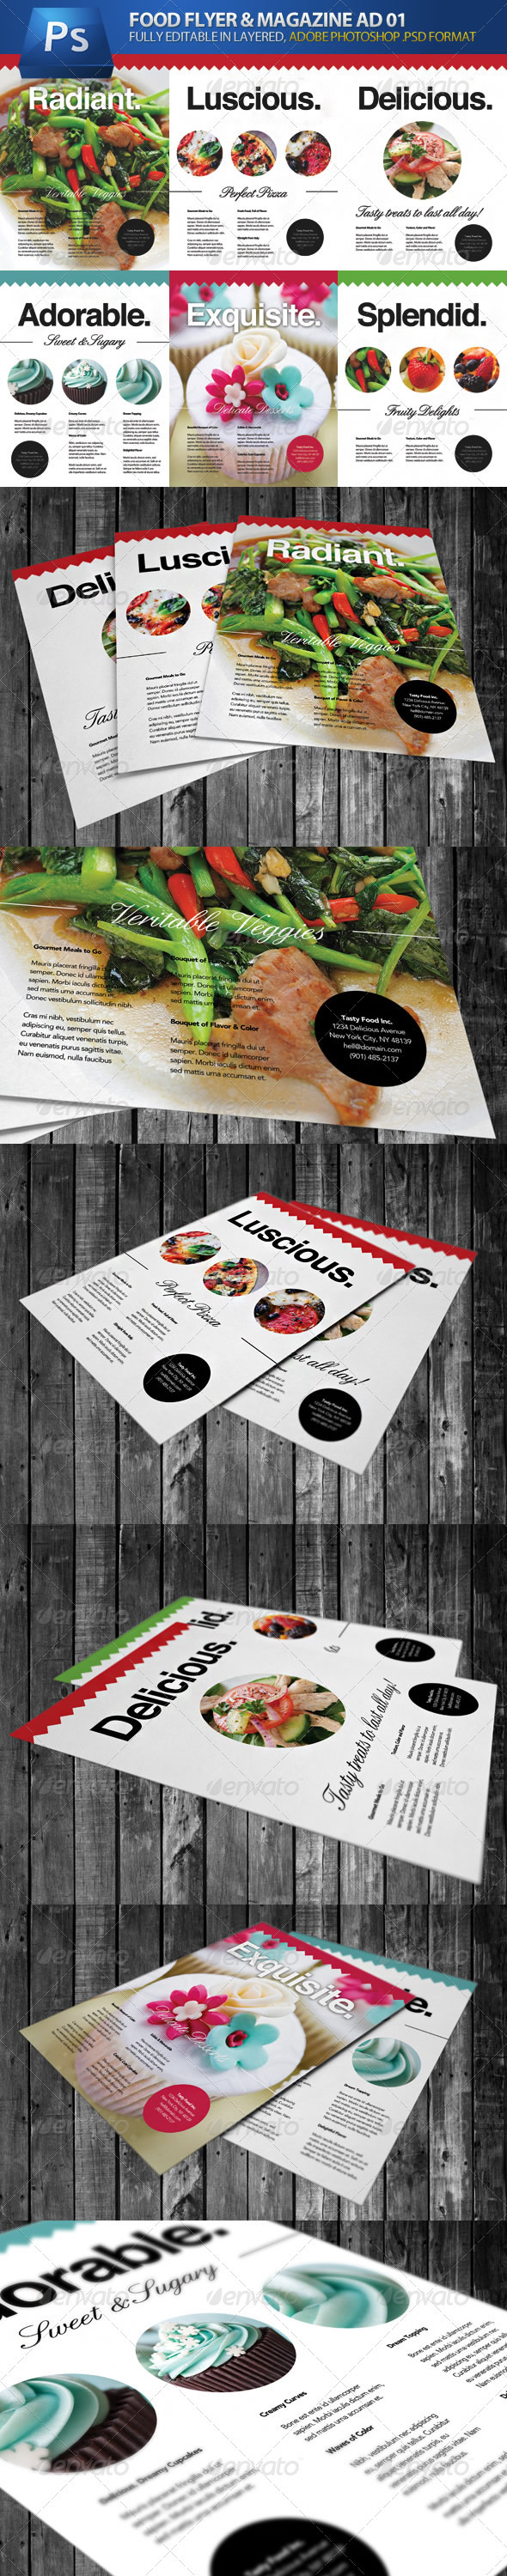 Food & Cooking Flyer & Magazine Adverts